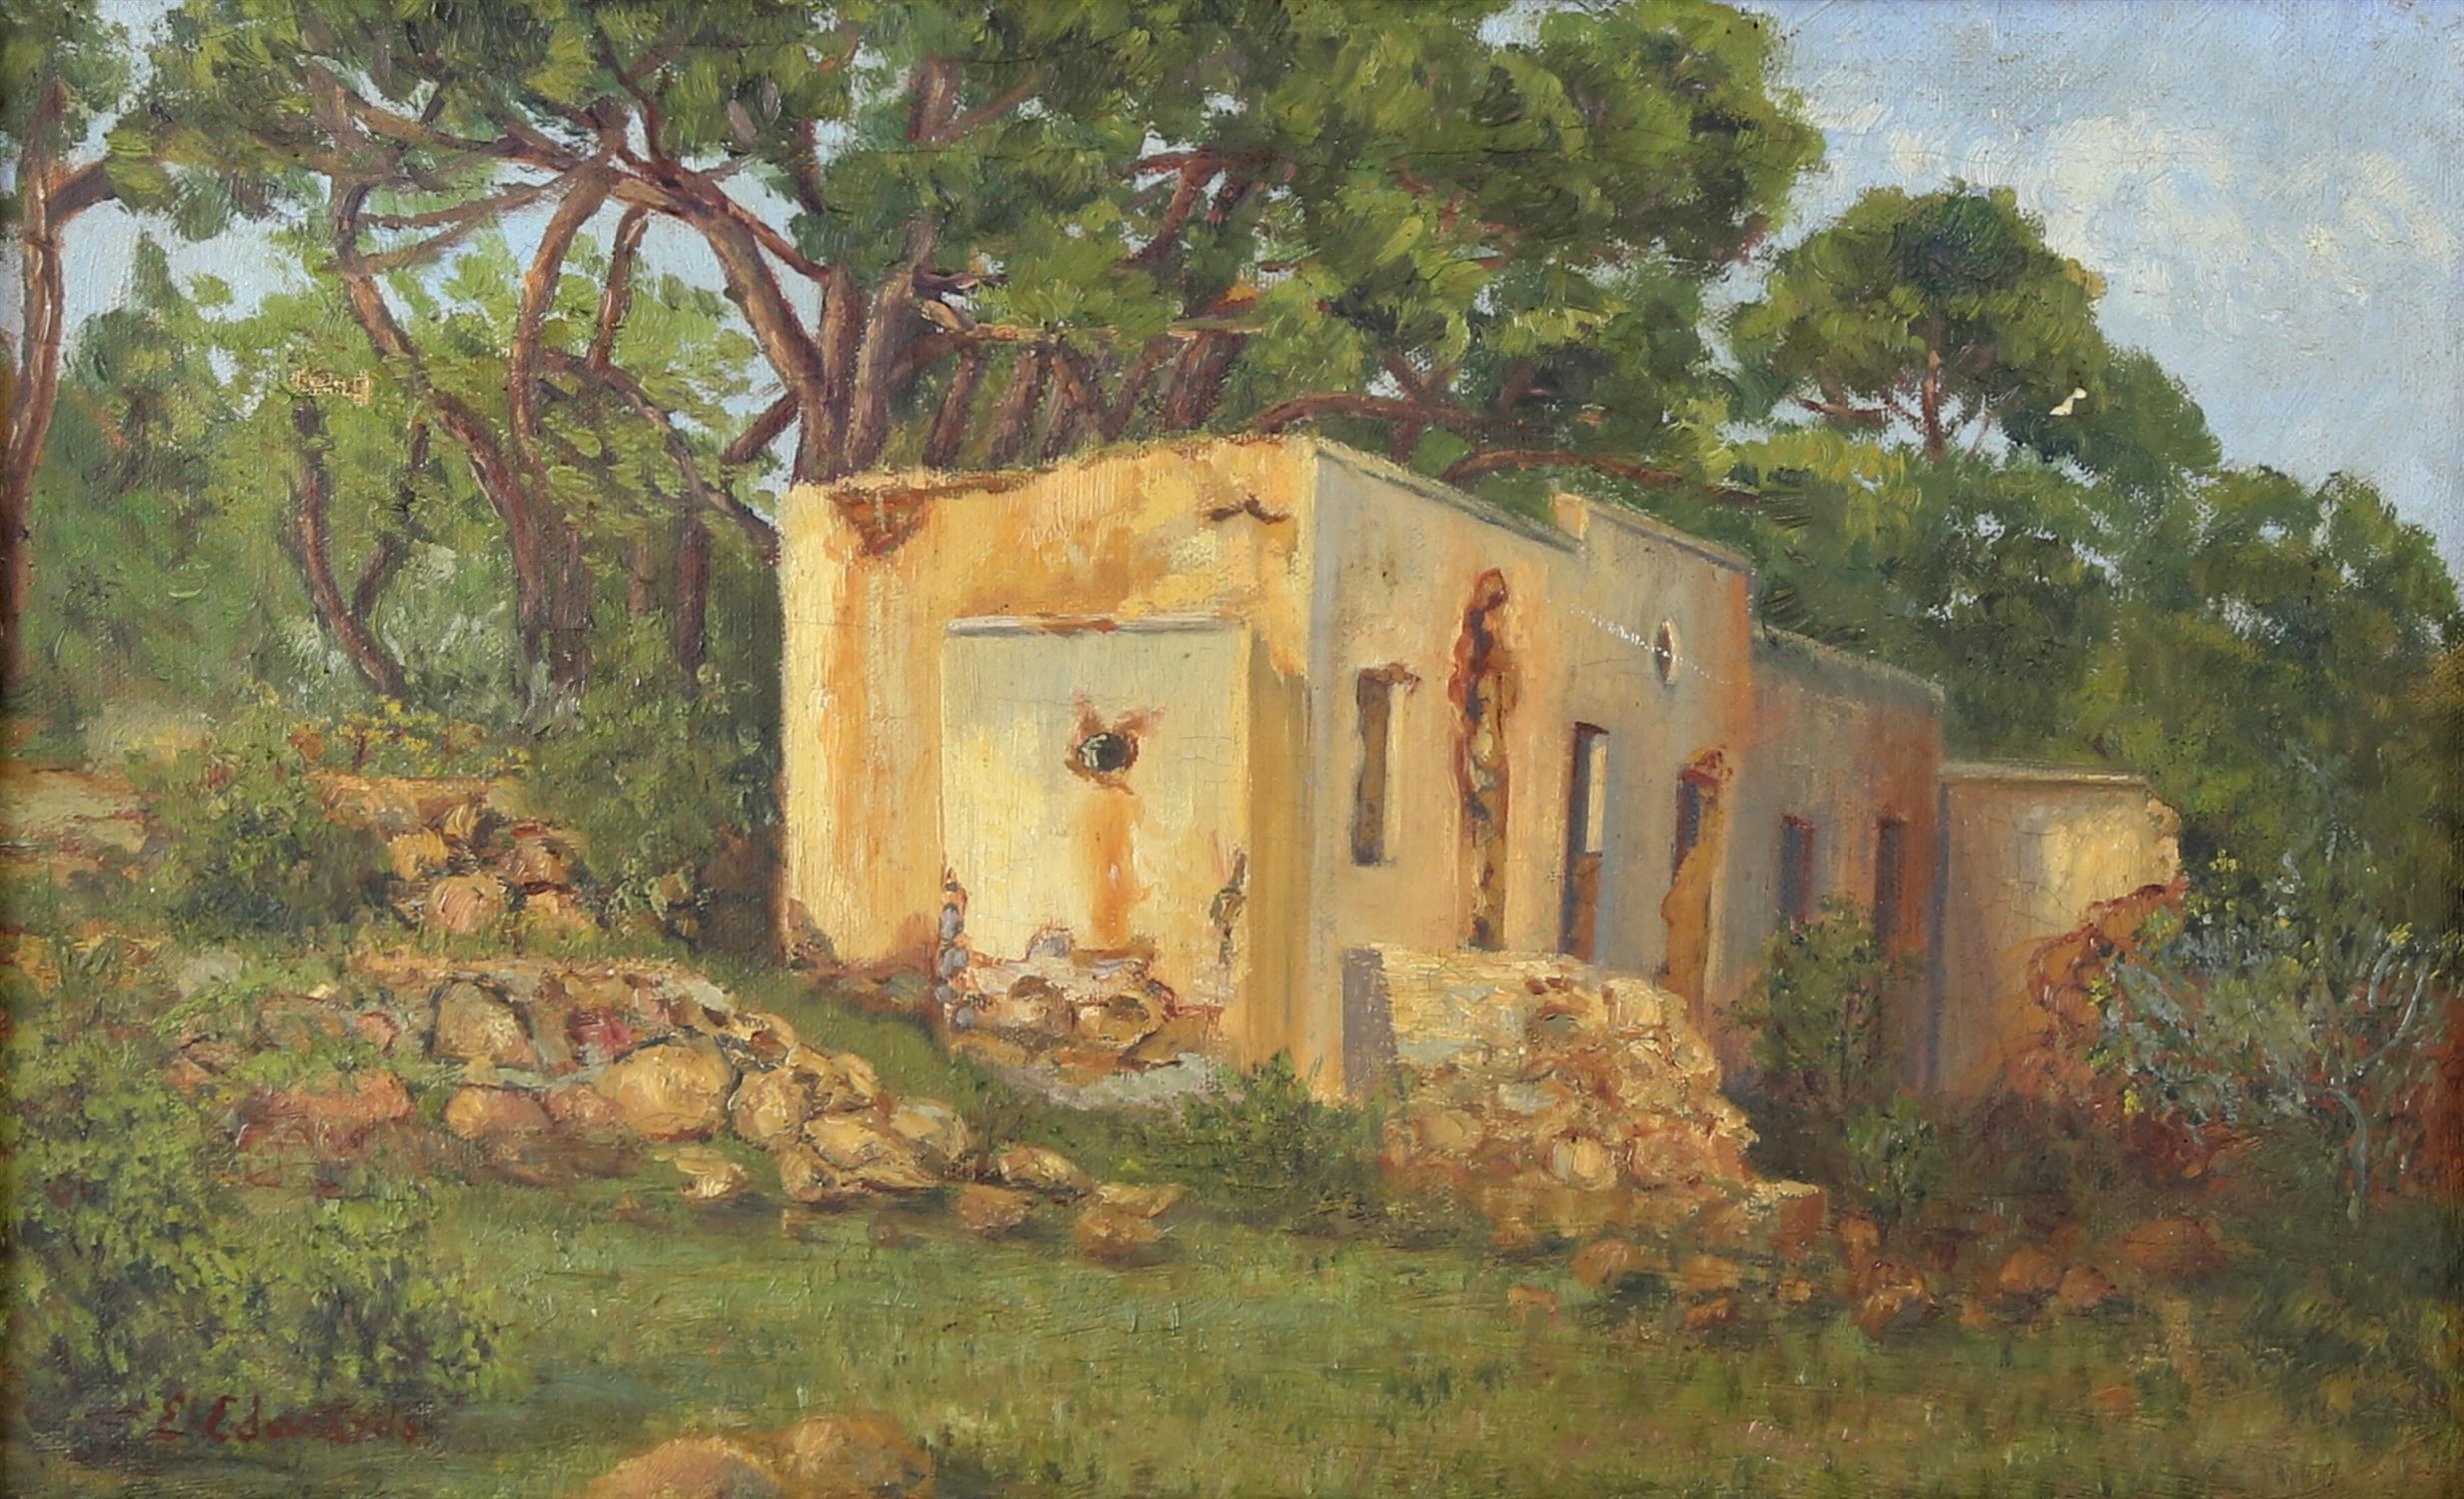 E Edwards, Ruined building in a South African woodland, oil on canvas, signed lower left, 24 x 39cm